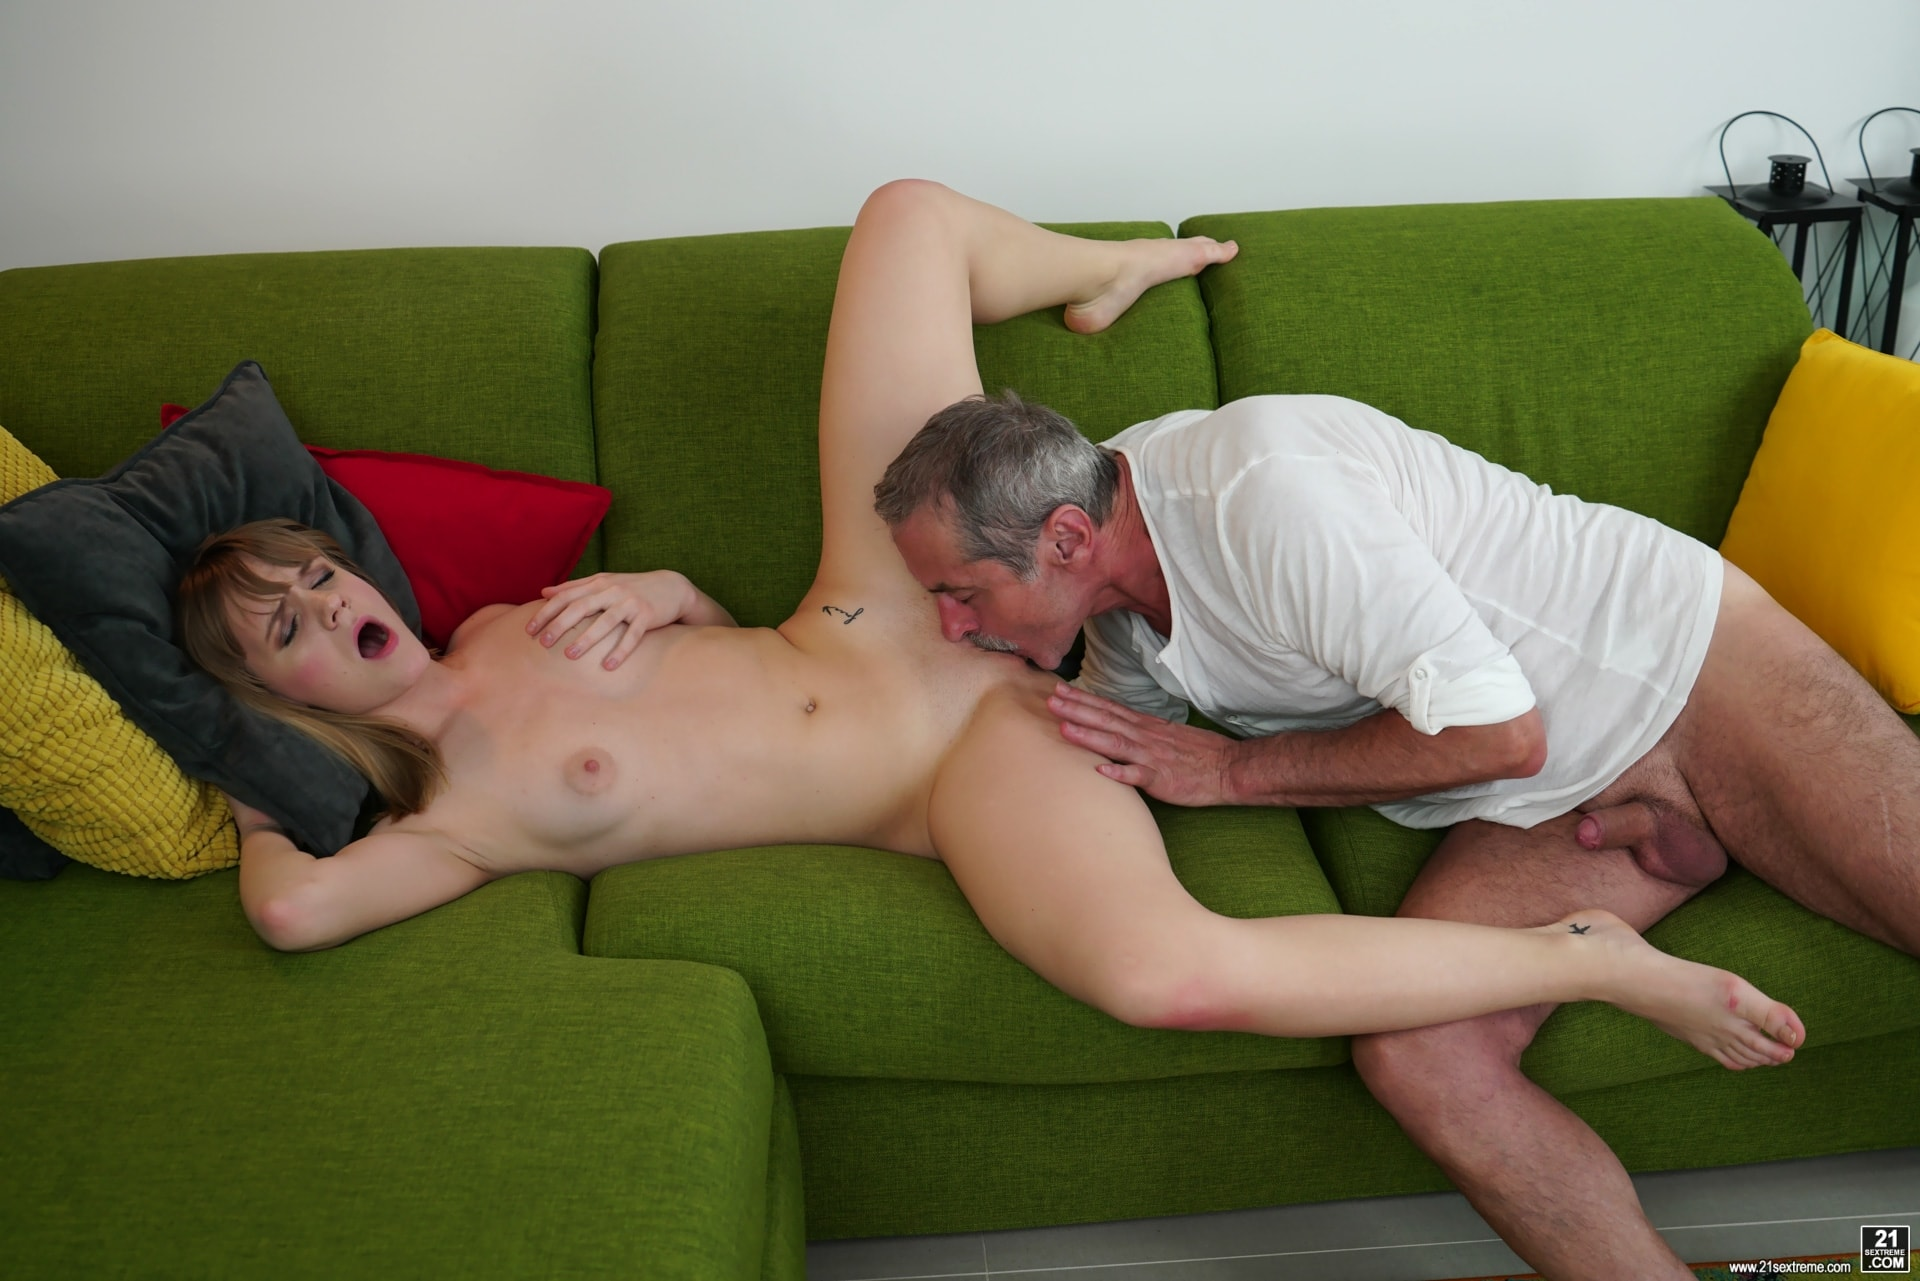 21Sextury 'Sexual Wisdom' starring Lucette Nice (Photo 112)